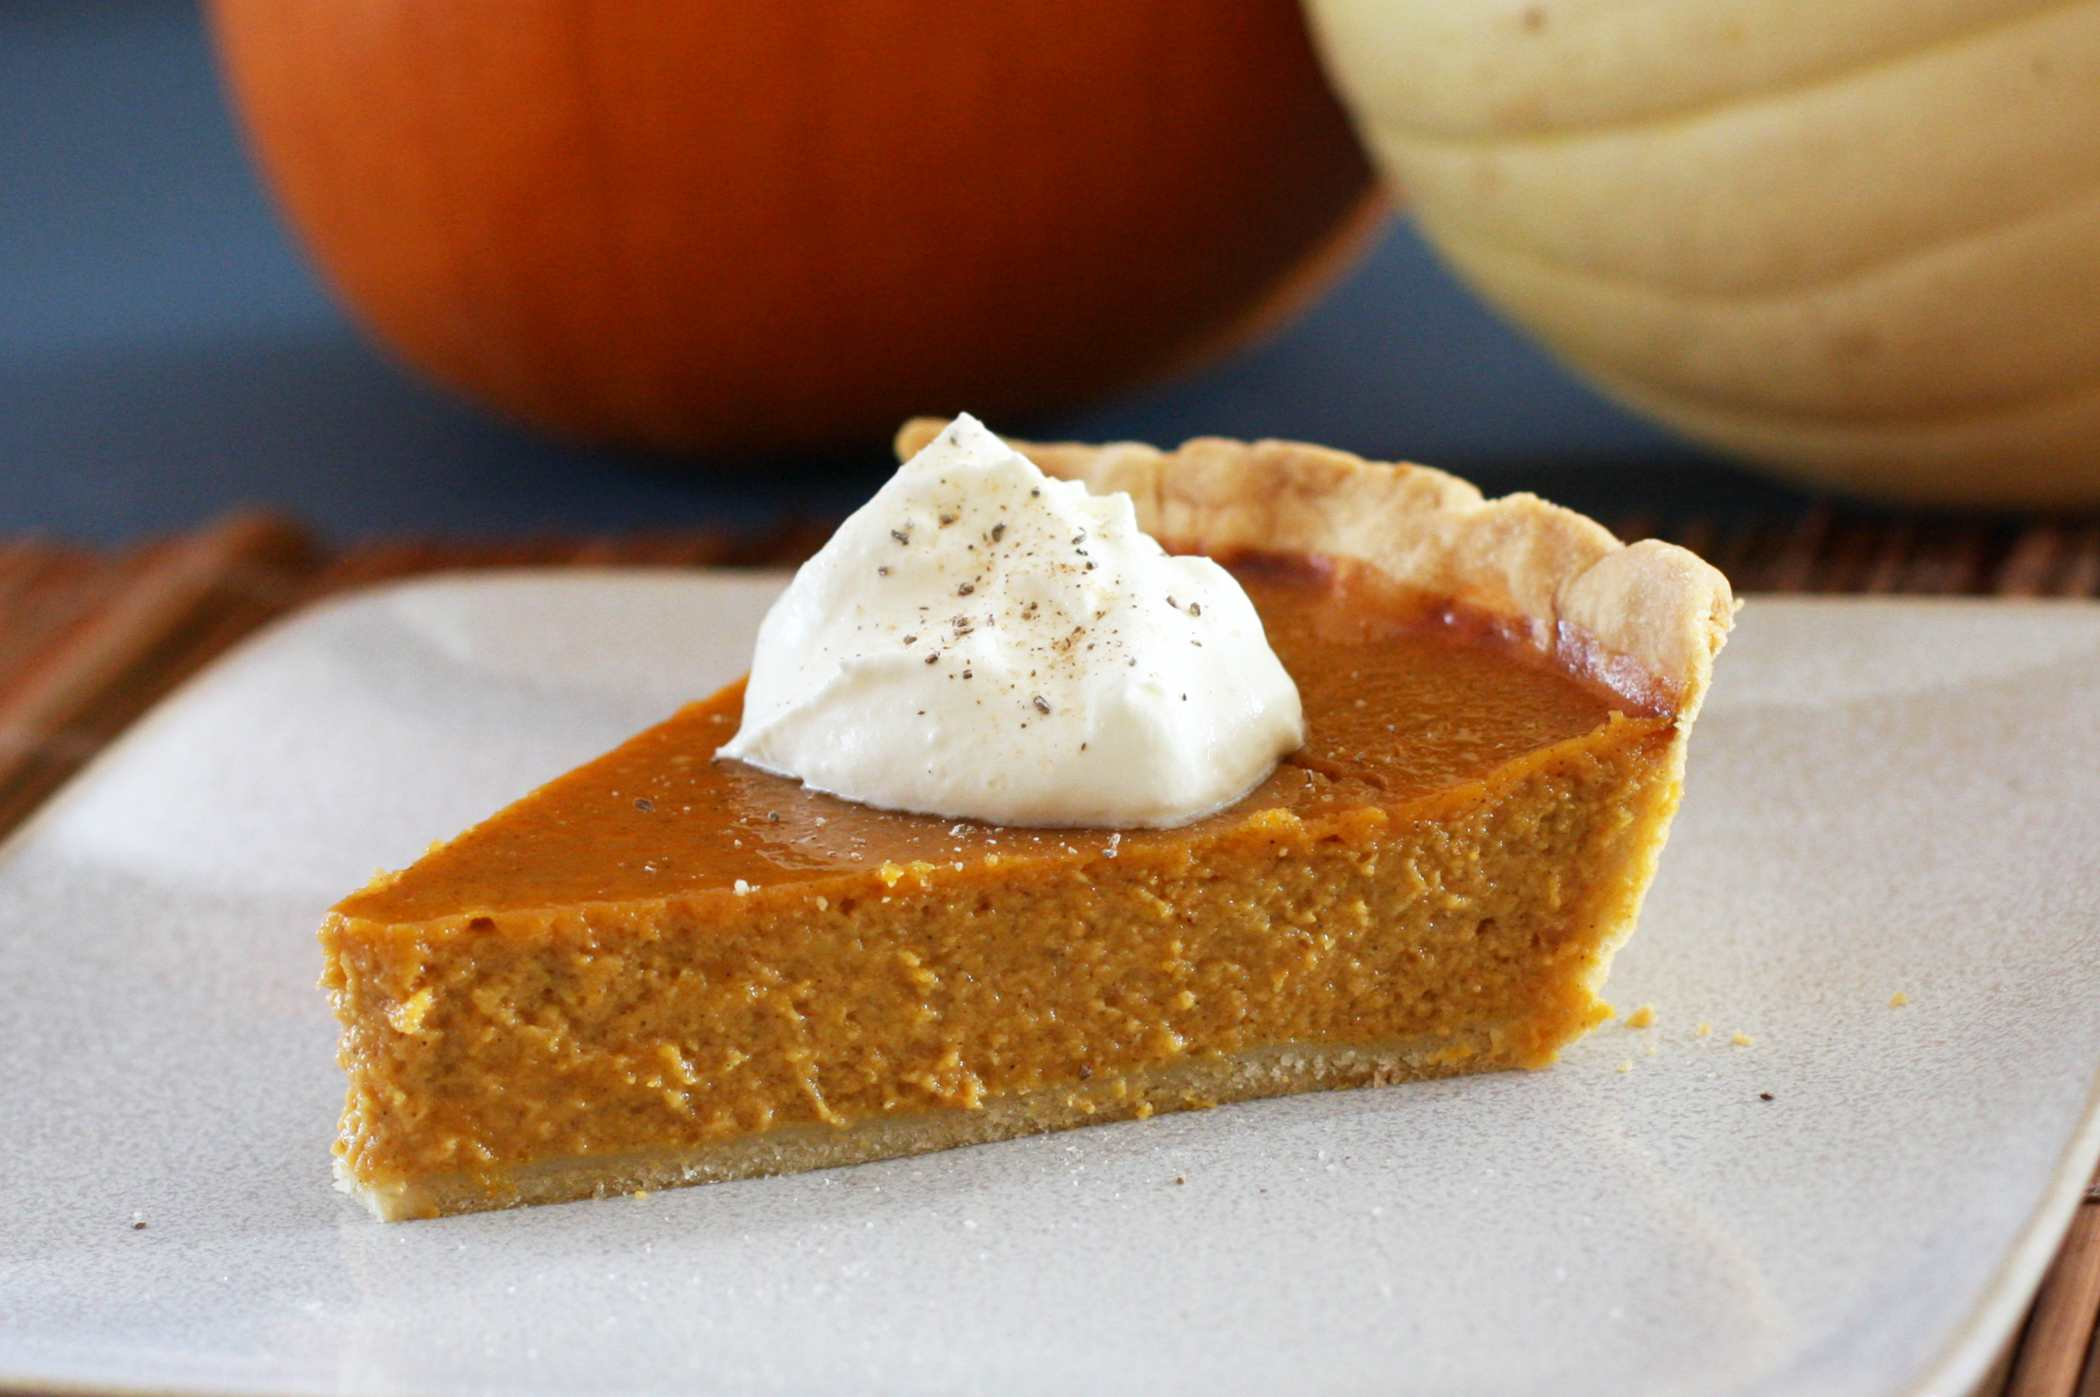 Piece of pumpkin pie with whipped creame on top. (Photo: Diana Rattray))